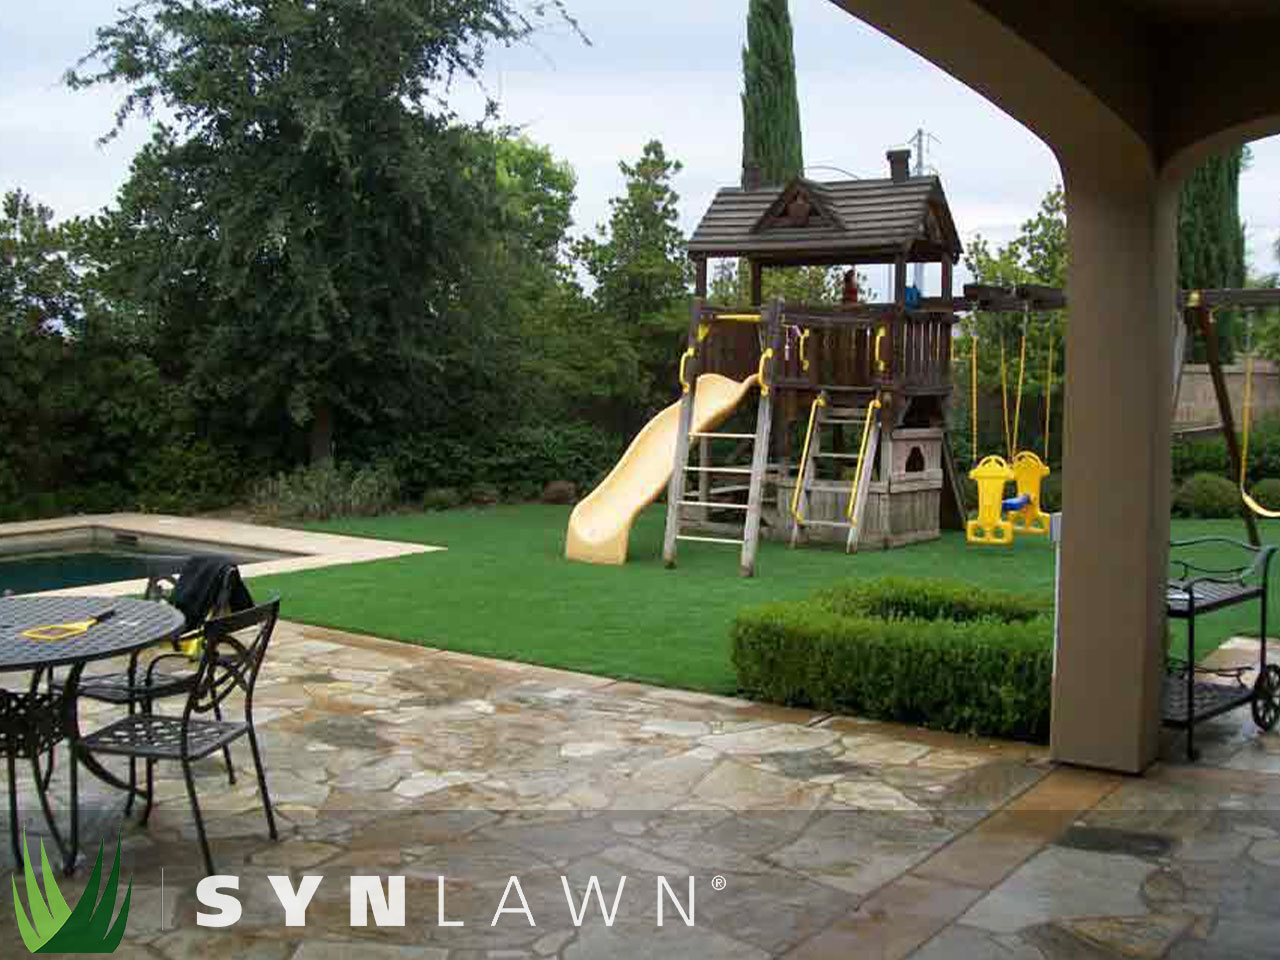 SYNLawn Playground Photo 17